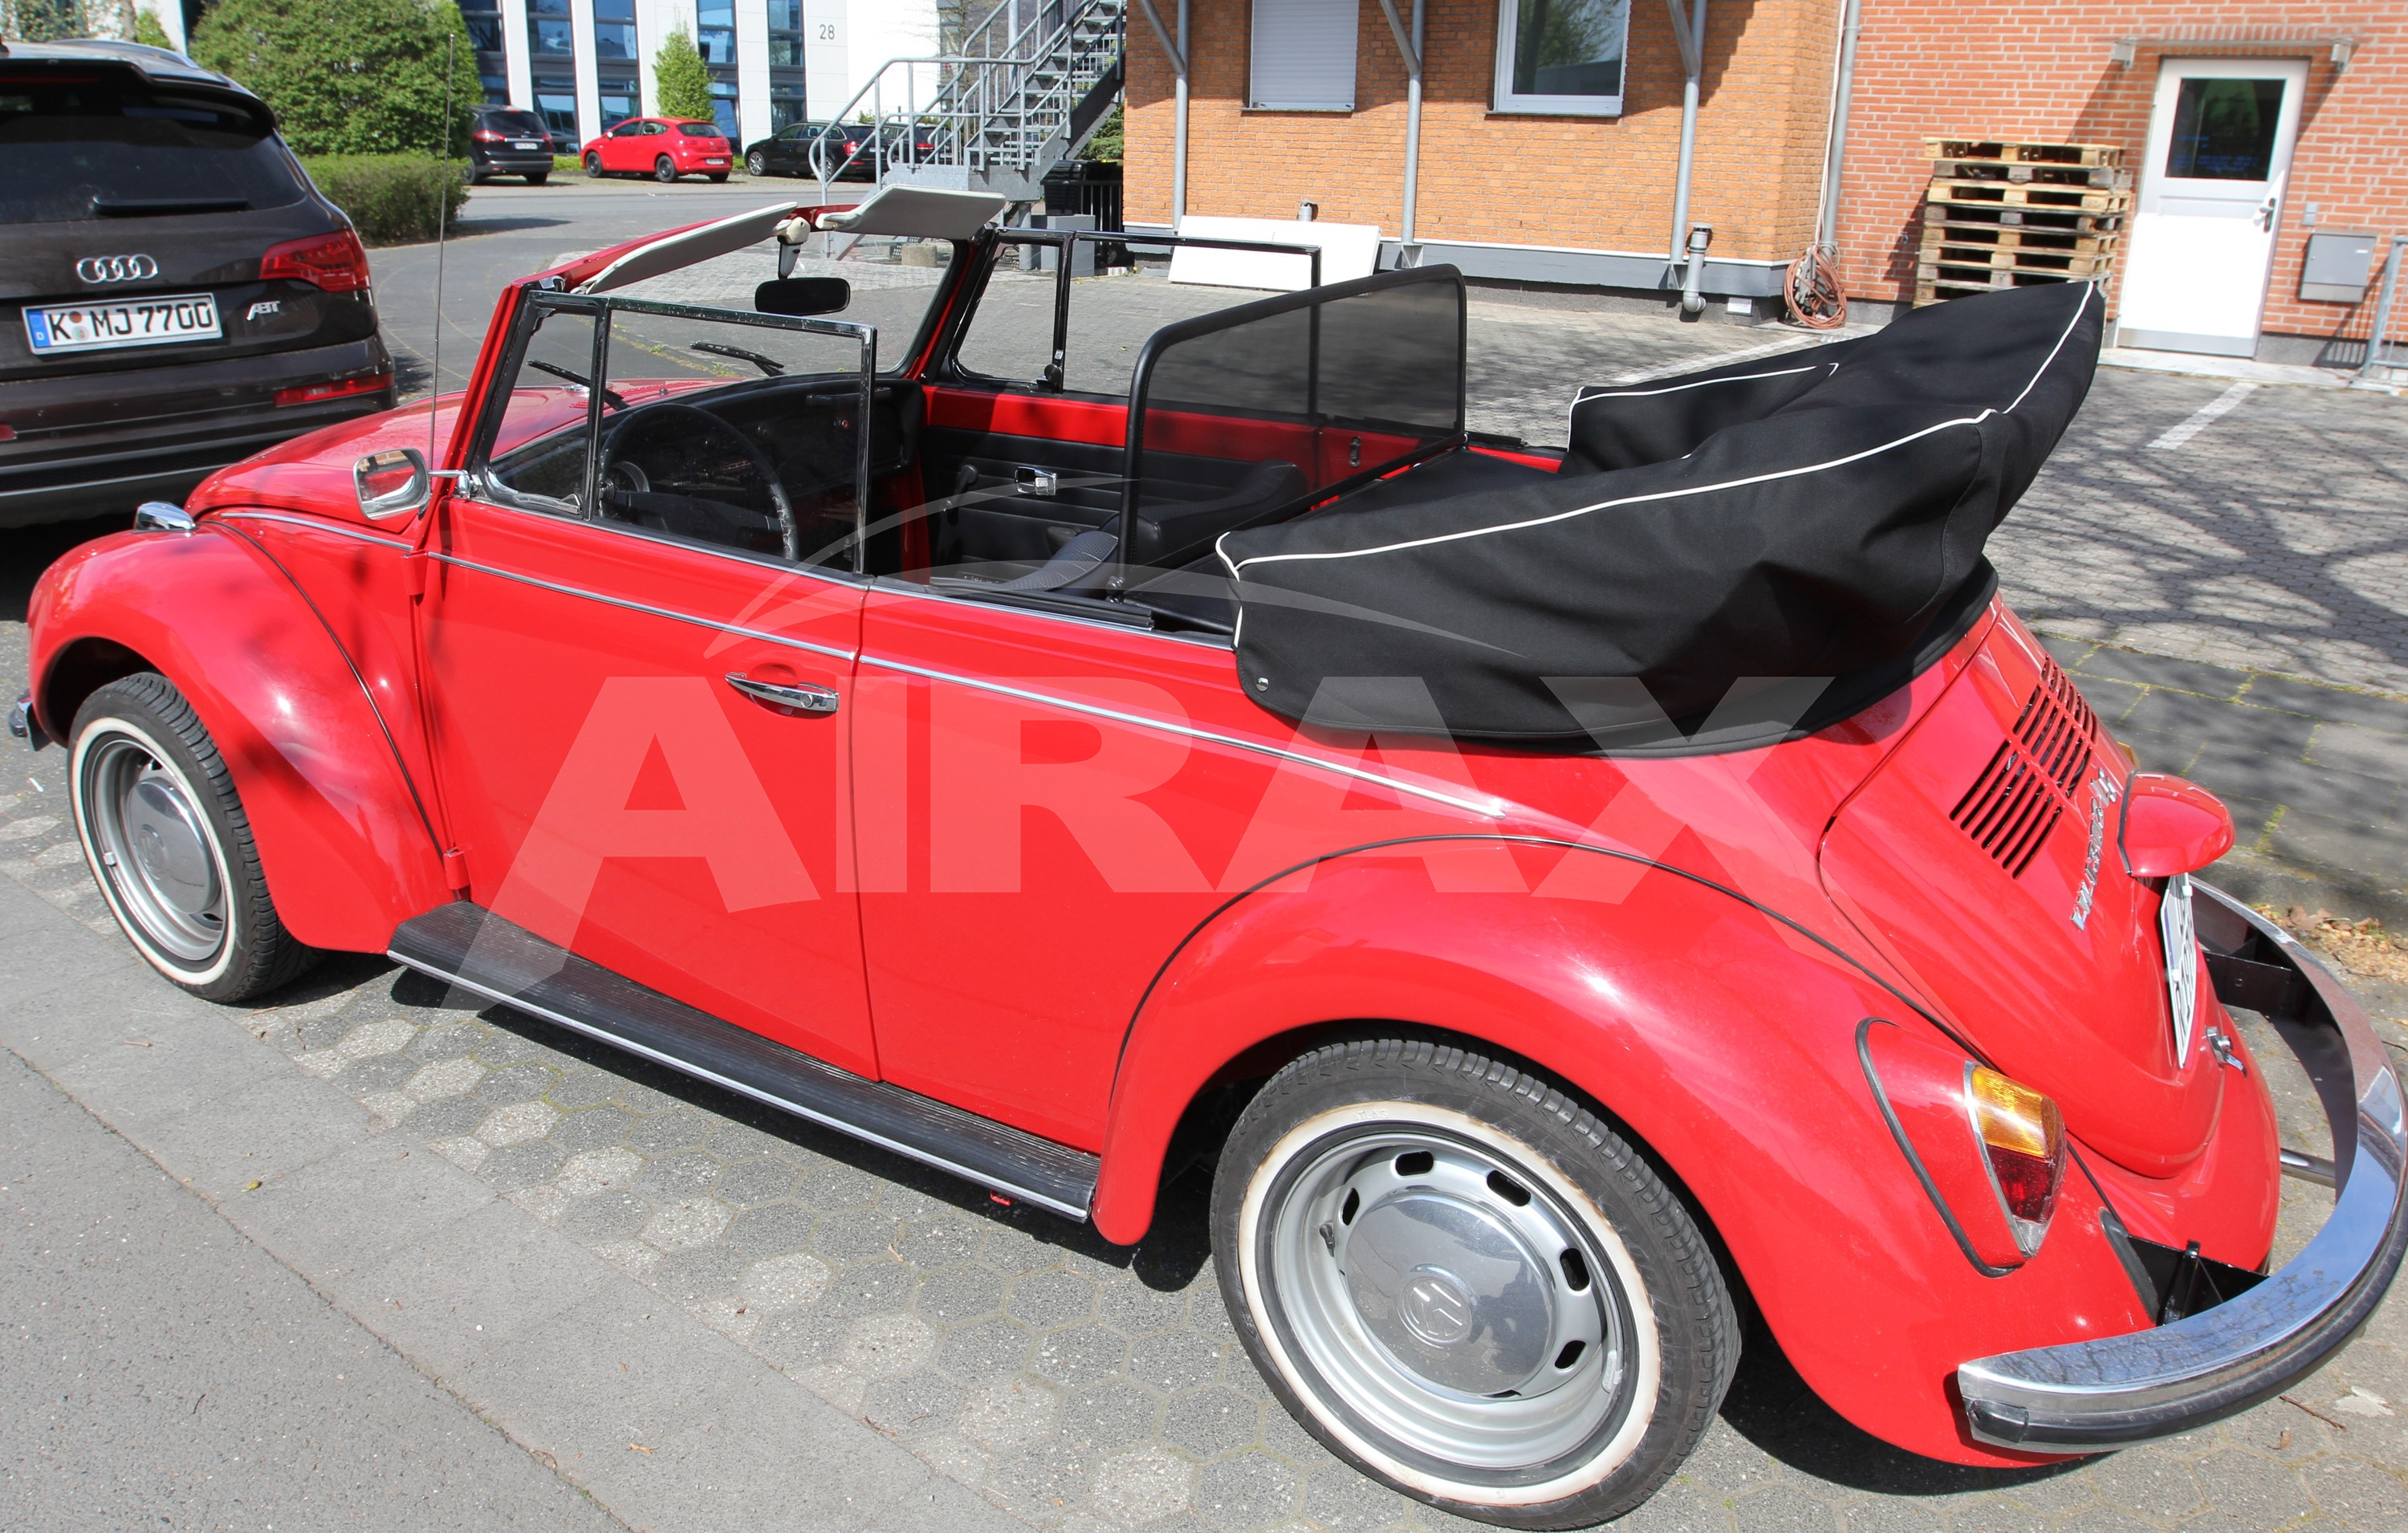 wind deflector for vw beetle 1302 1303 with quick release. Black Bedroom Furniture Sets. Home Design Ideas